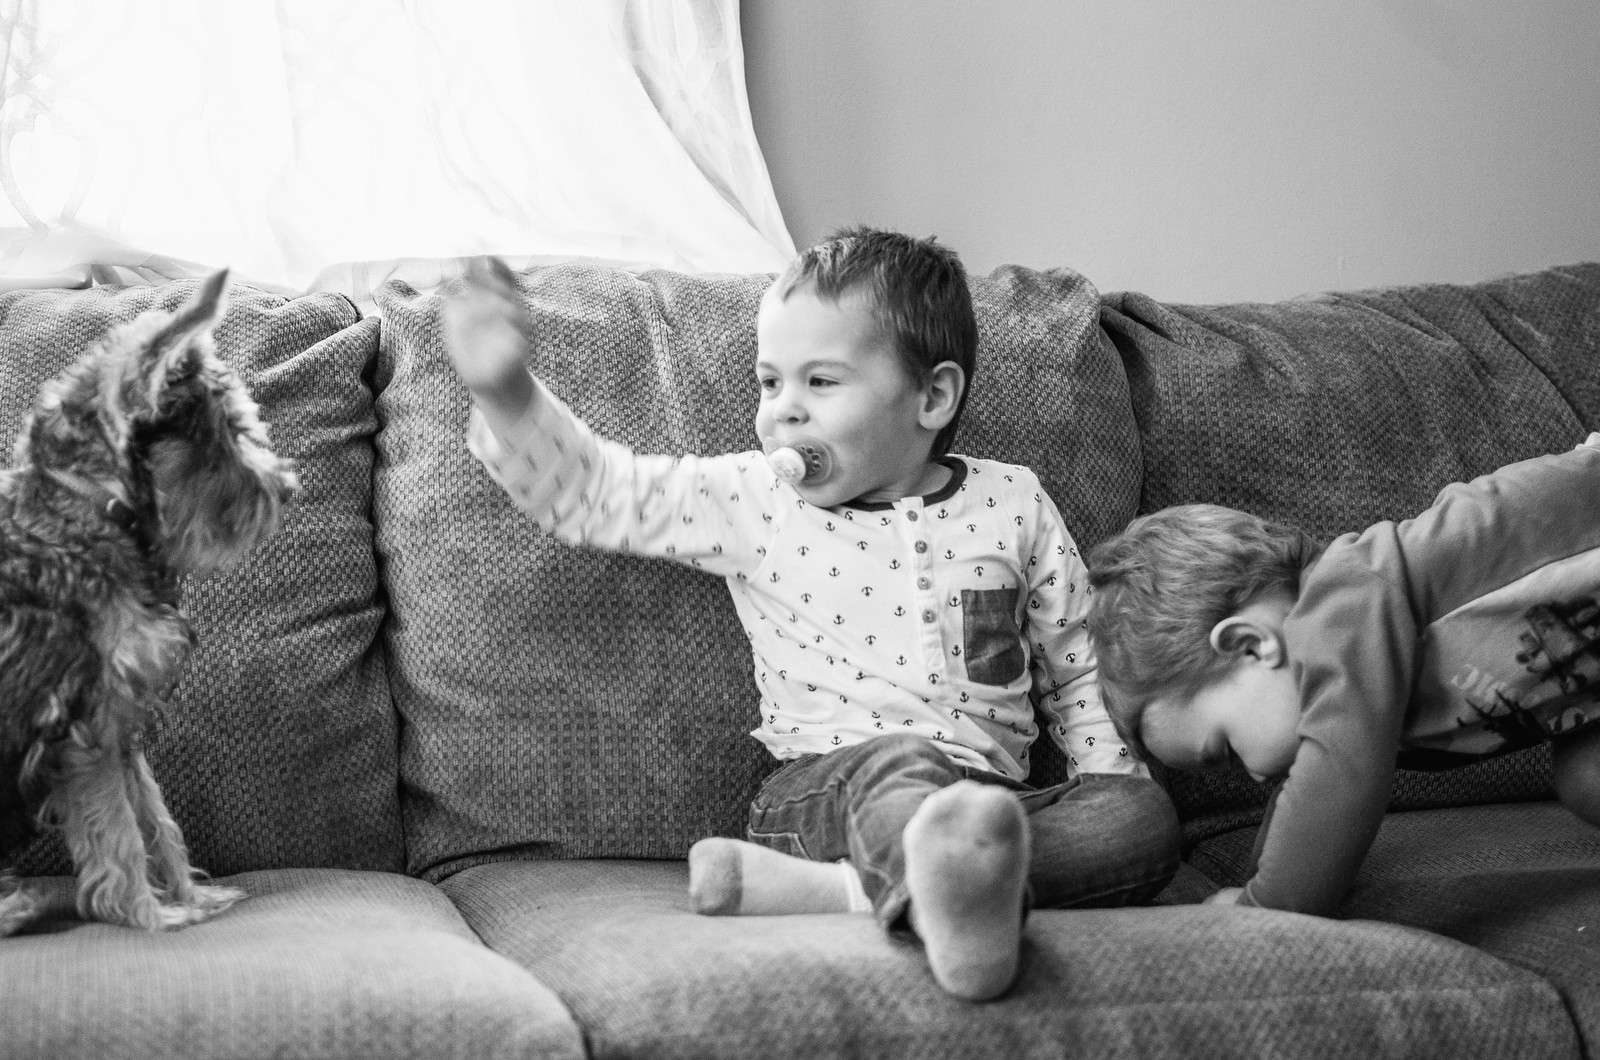 Playing on the couch